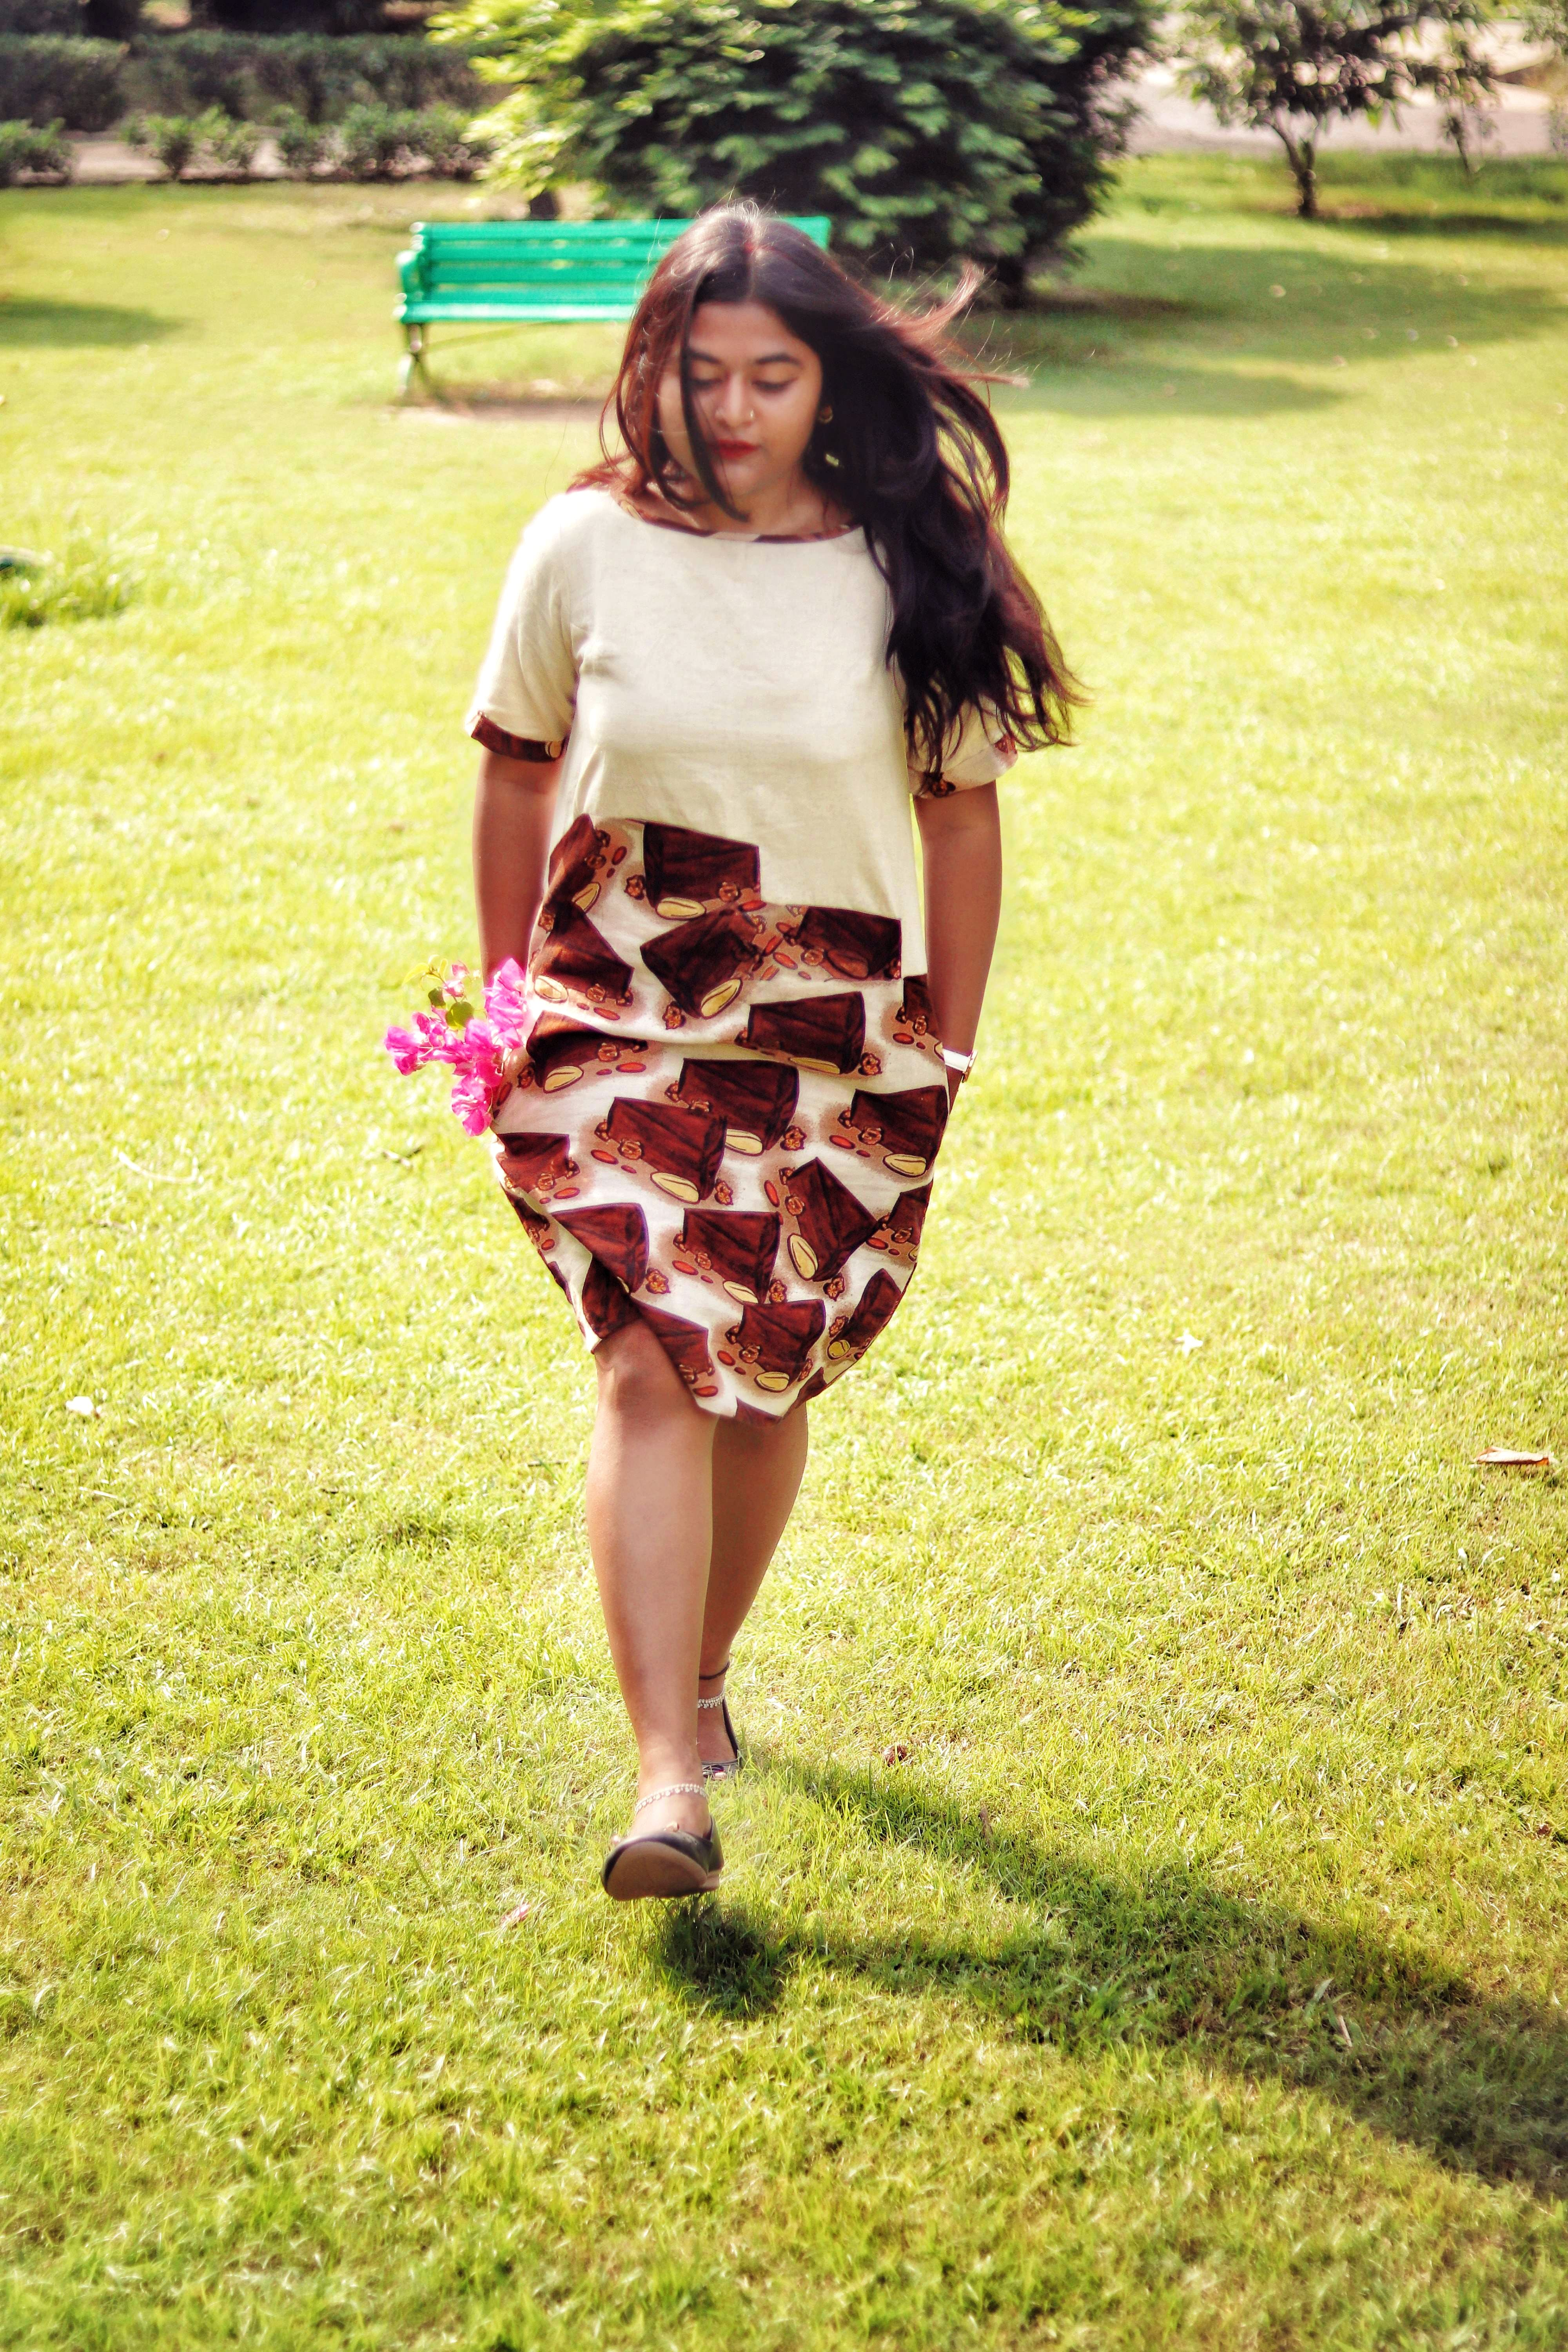 Summerbarn: Sustainable Fashion Which Is Simple Yet Verstaile